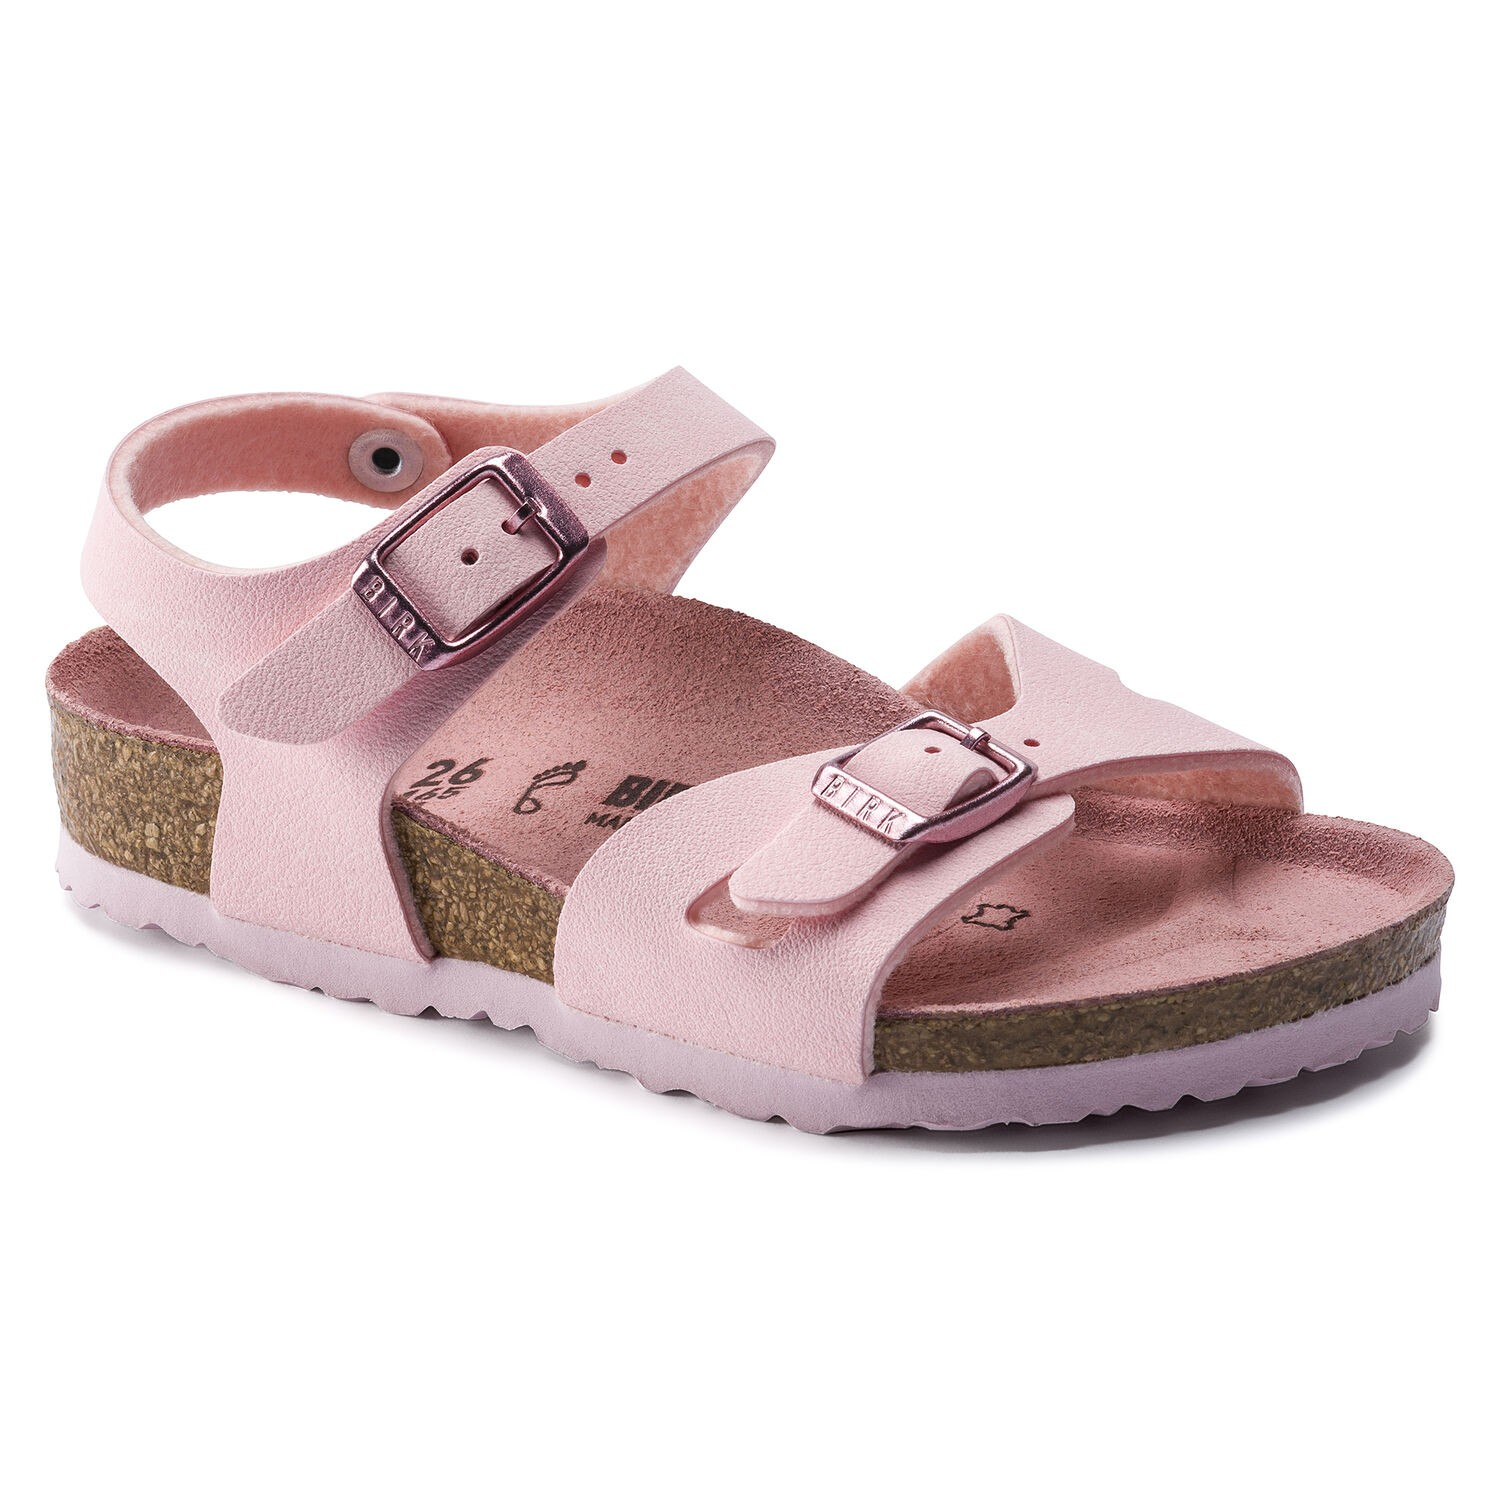 Birkenstock Rio Kids BF Nubuck Rose Narrow